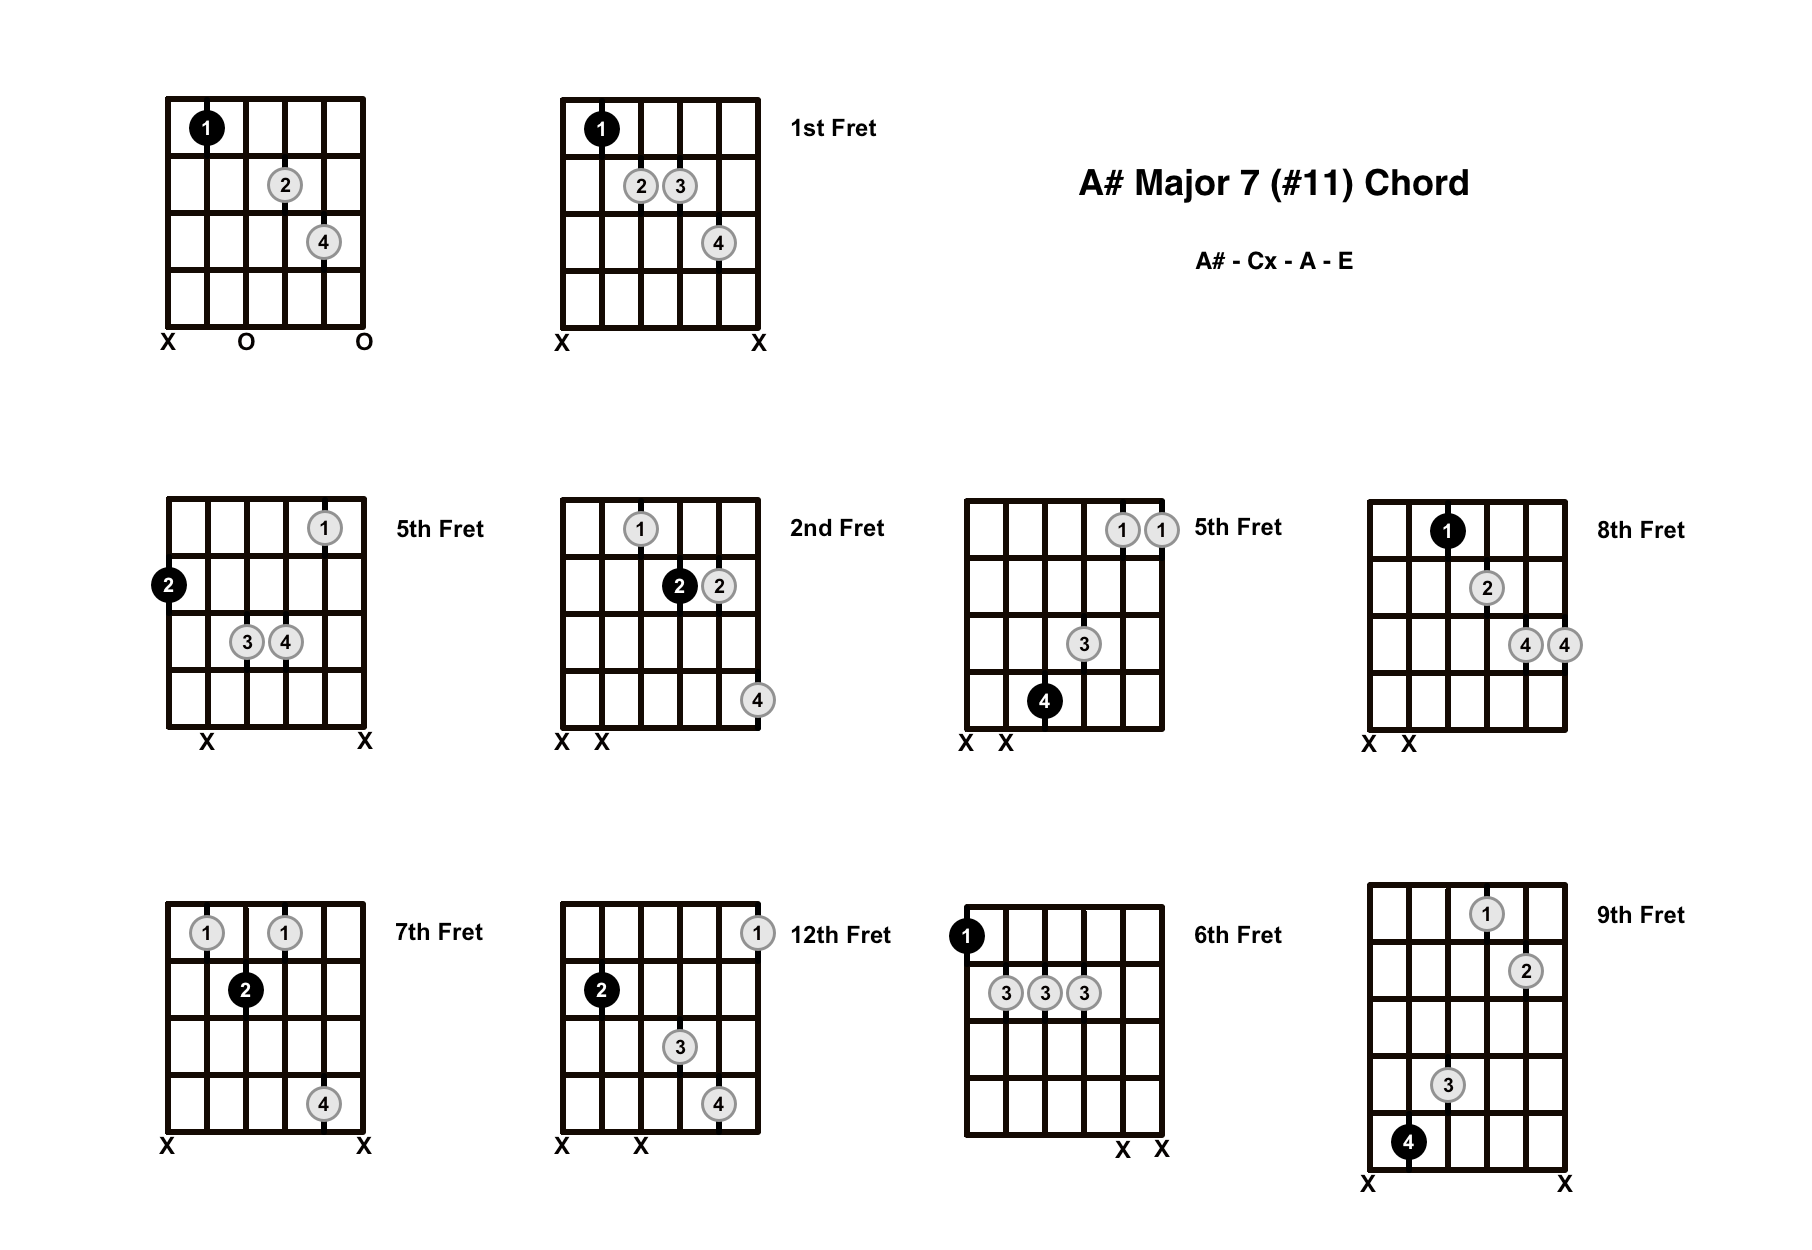 A#maj7#11 Chord On The Guitar (A Sharp Major 7 #11) – Diagrams, Finger Positions and Theory